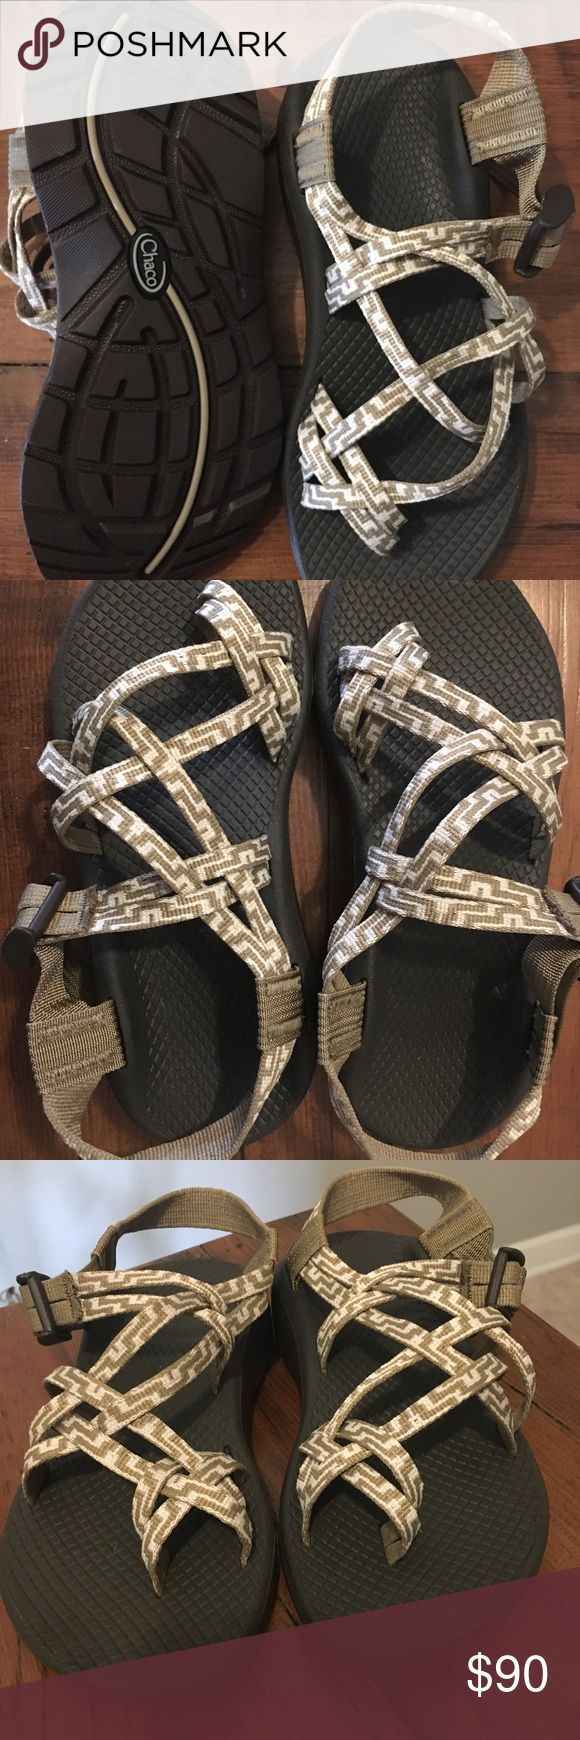 NWT Chaco Sz 6 Women's desert khaki Brand new with tag! Daughter just didn't like the color since she likes to be fashionable in her teals! I loved the desert khaki color because they blend nicely with your adventure clothes! Toe strap style which can still be adjusted to be tightened or loosened. Comes from smoke free home! Chaco Shoes Sandals